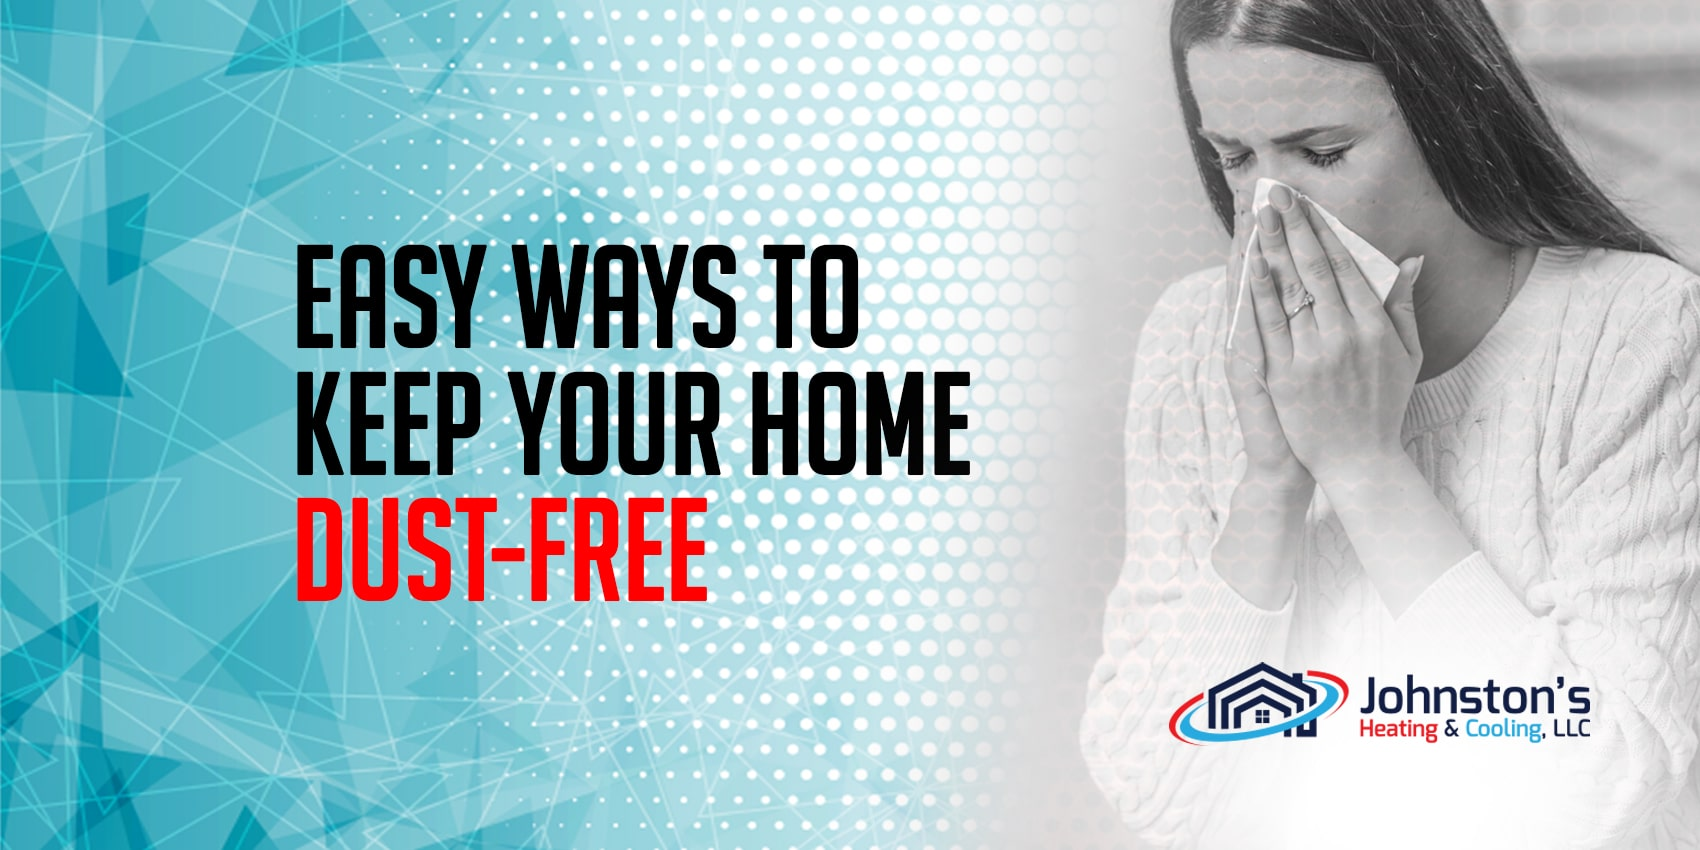 Easy Ways to Keep Your Home Dust-Free